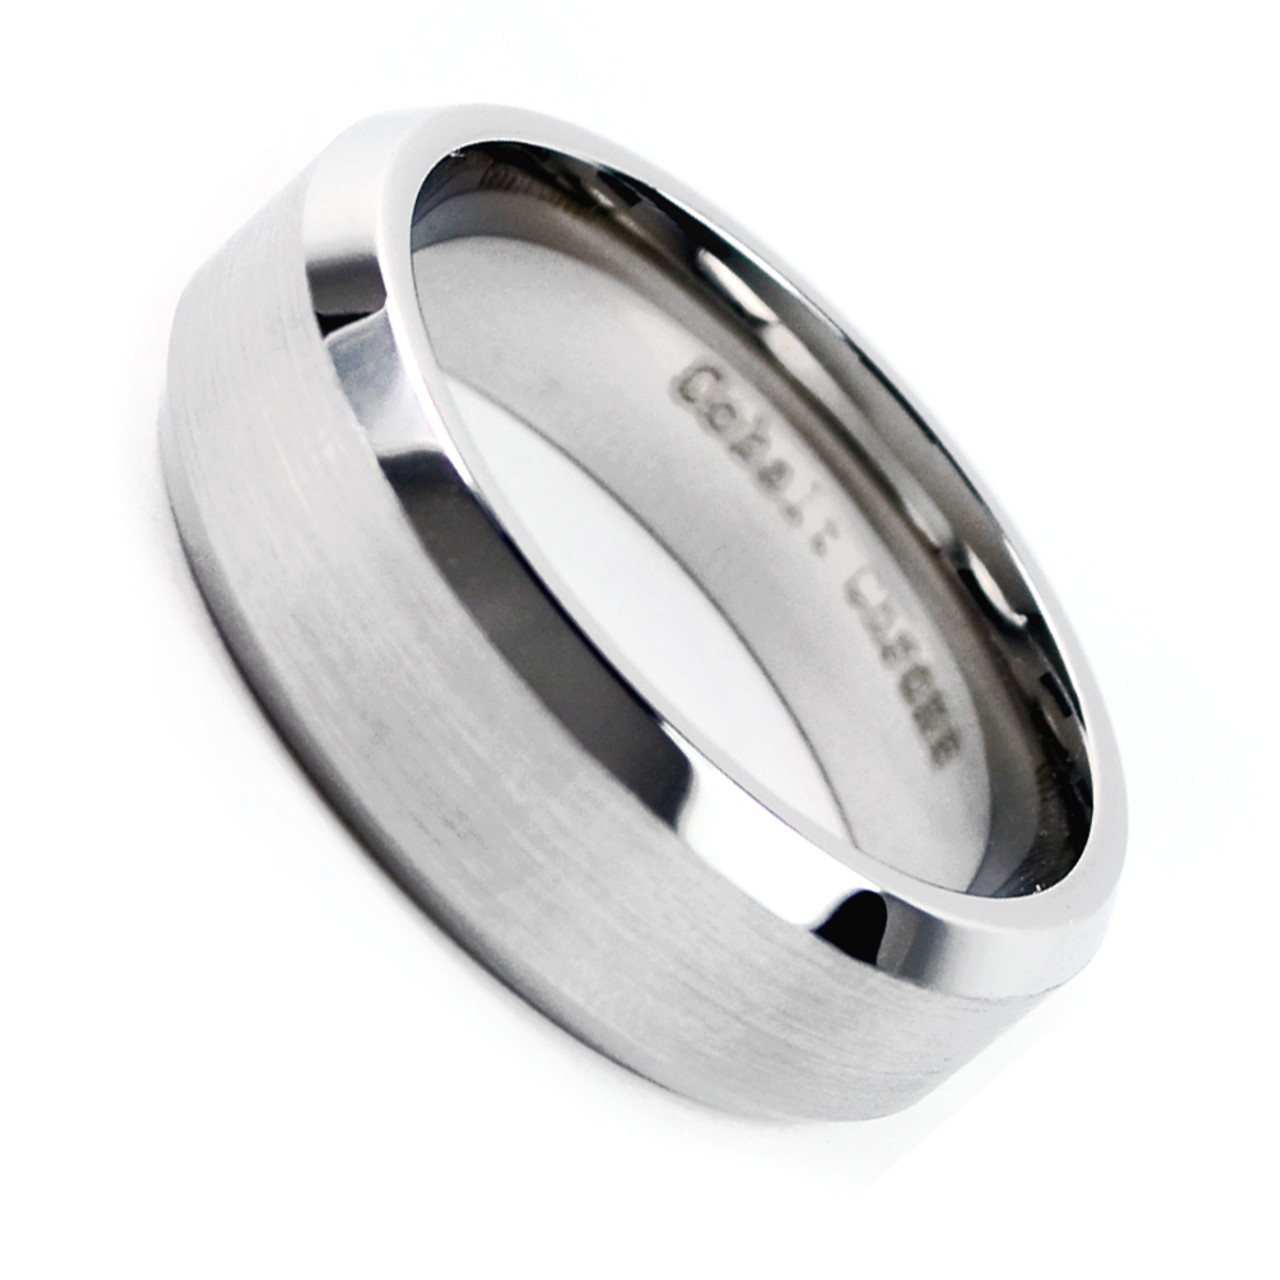 Men's Cobalt Chrome 8mm Beveled Edge Matte Finish Wedding Band Ring: Beveled Edge Matte Wedding Ring At Reisefeber.org